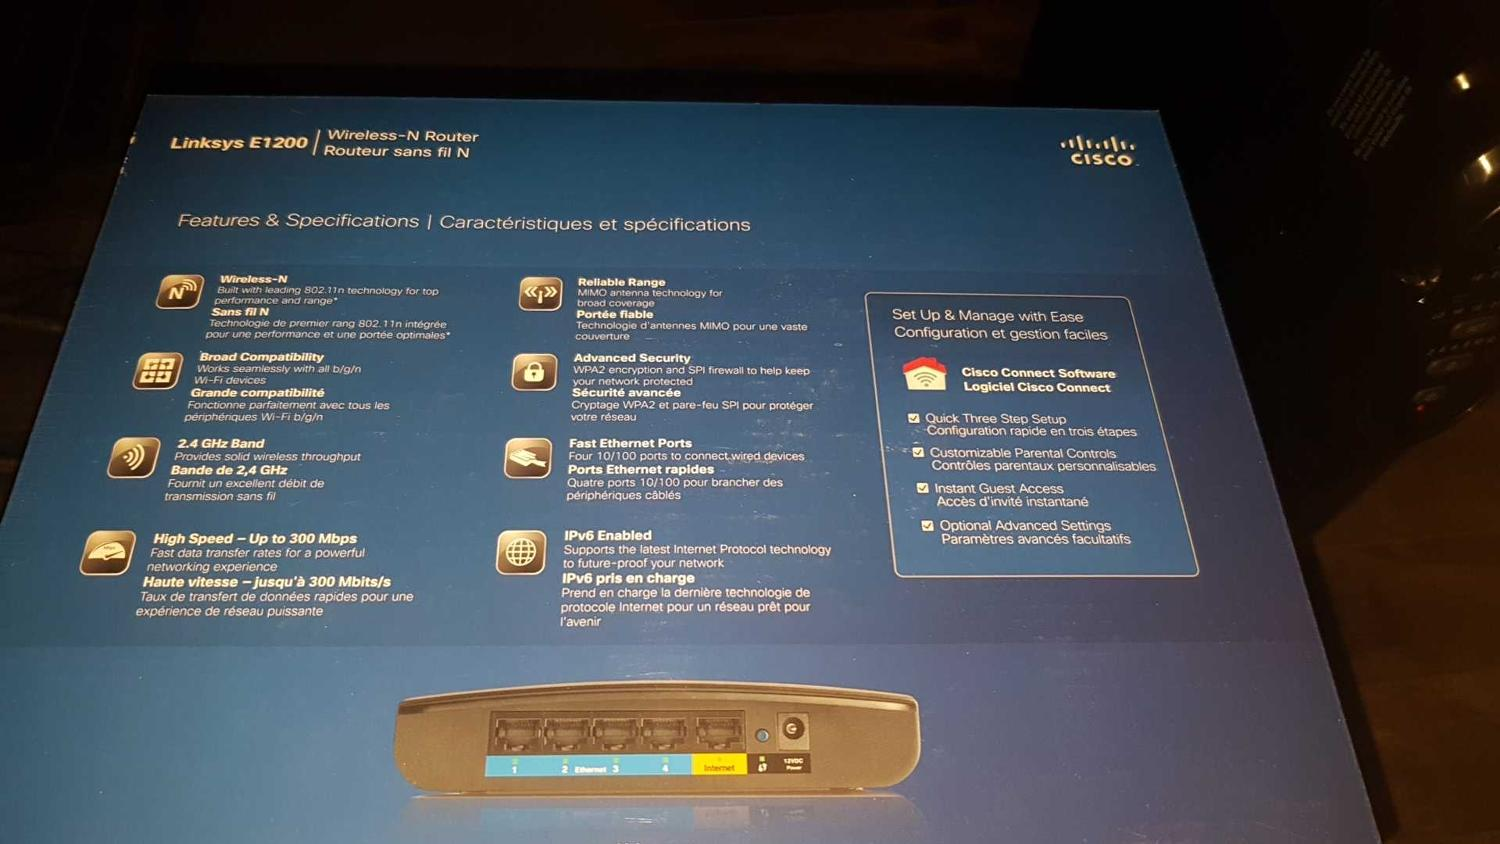 Cisco Linksys E1200 Wireless N Router Software  Cisco